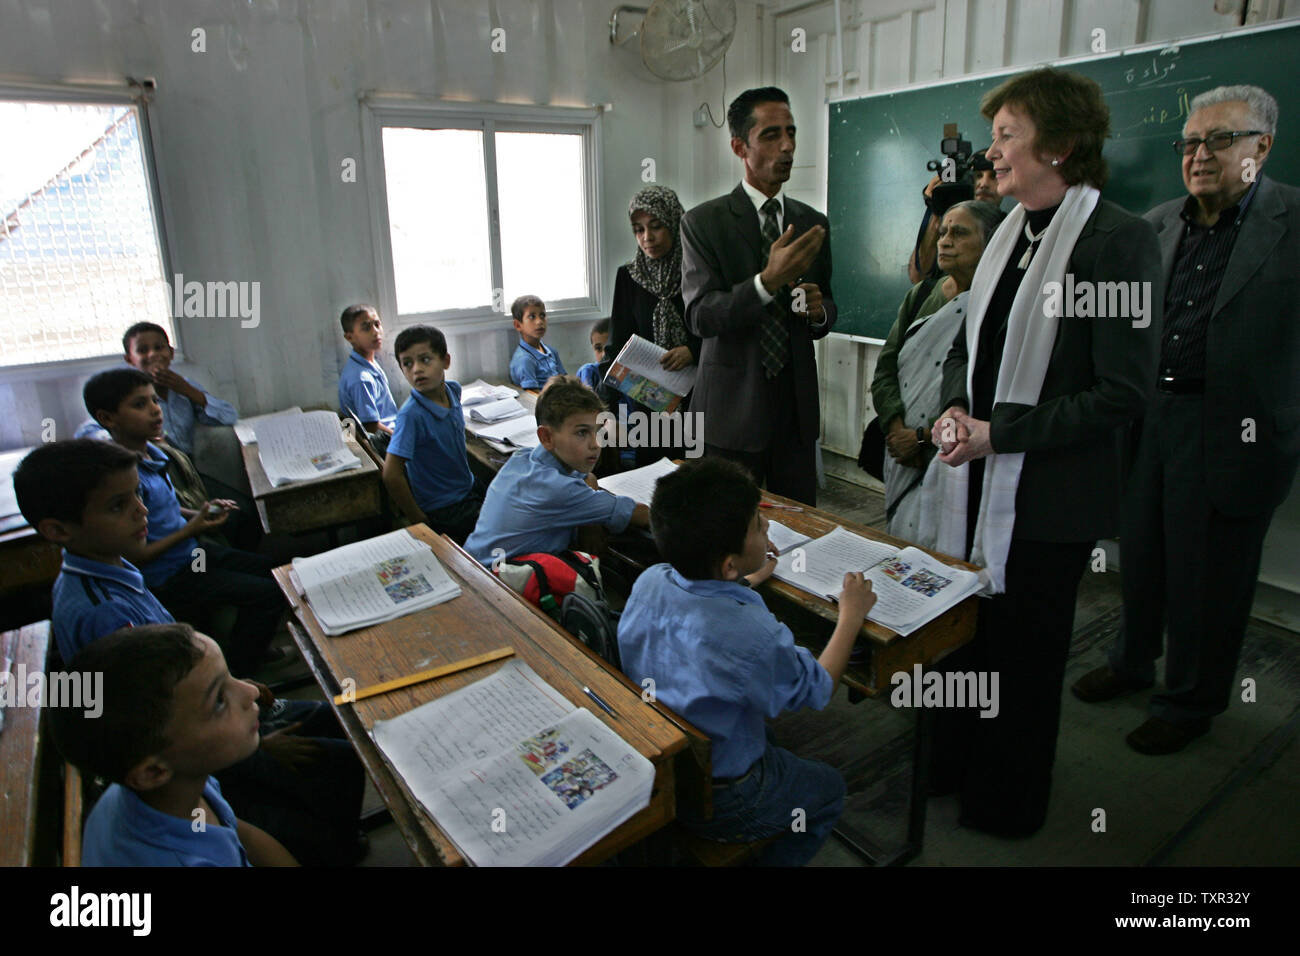 Delegates of The Elders group of retired prominent world figures, former Irish president Mary Robinson (2-R), Indian activist Ela Bhatt (3-R) and former UN envoy Lakhdar Brahimi ( R), visit a UN-run school in Deir Al-Balah refugee camp in the central Gaza Strip on October 16, 2010, during a visit to Gaza the Hamas-run Palestinian territory.  UPI/Ismael Mohamad - Stock Image